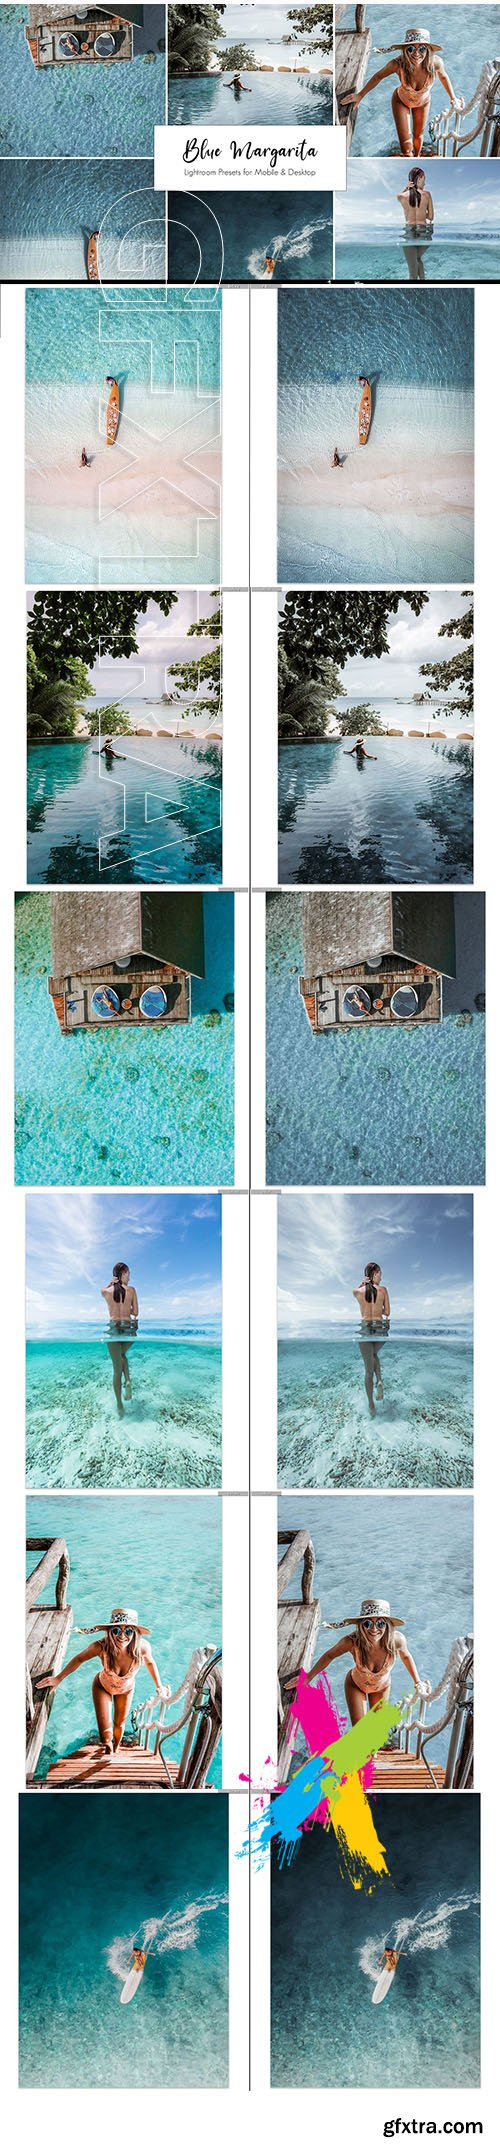 CreativeMarket - Blue Margarita Lightroom Presets 5421116